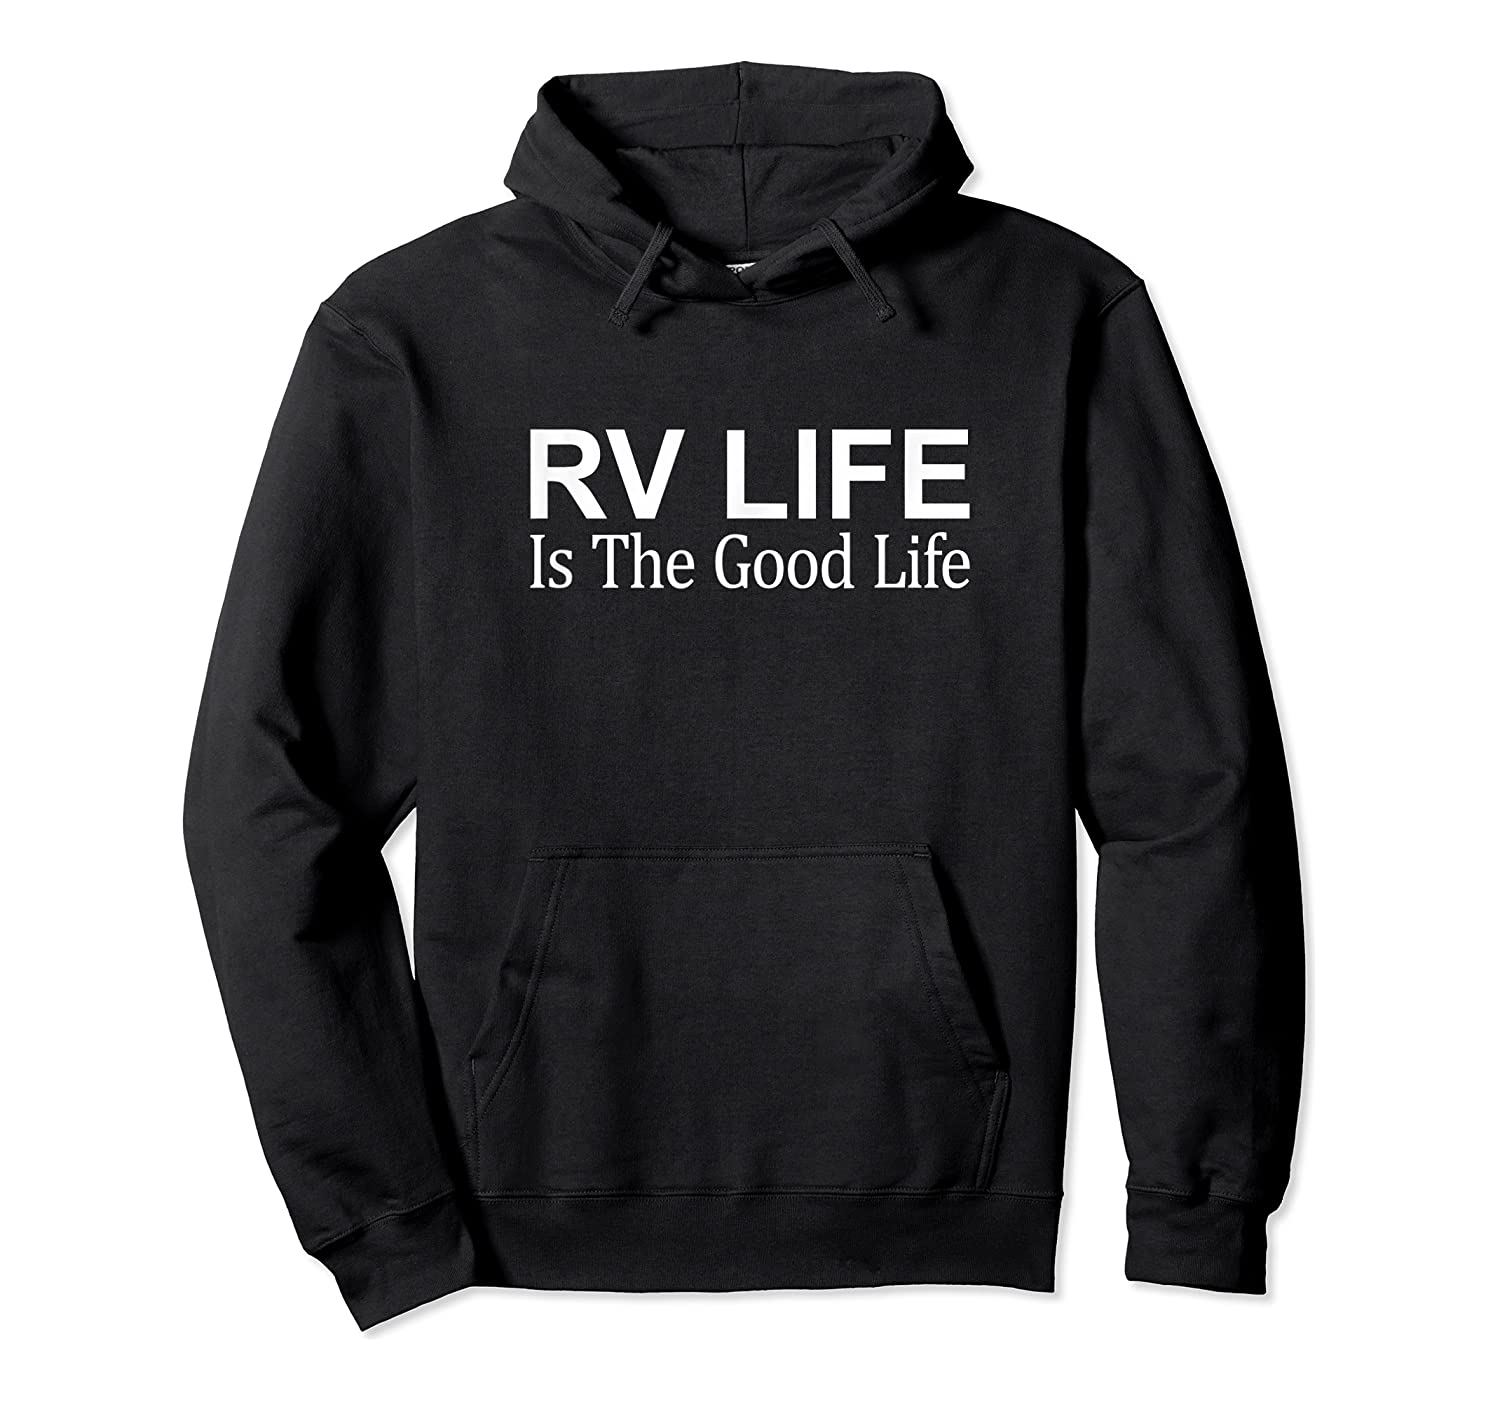 Rv Life Is The Good Life - T-shirt Unisex Pullover Hoodie